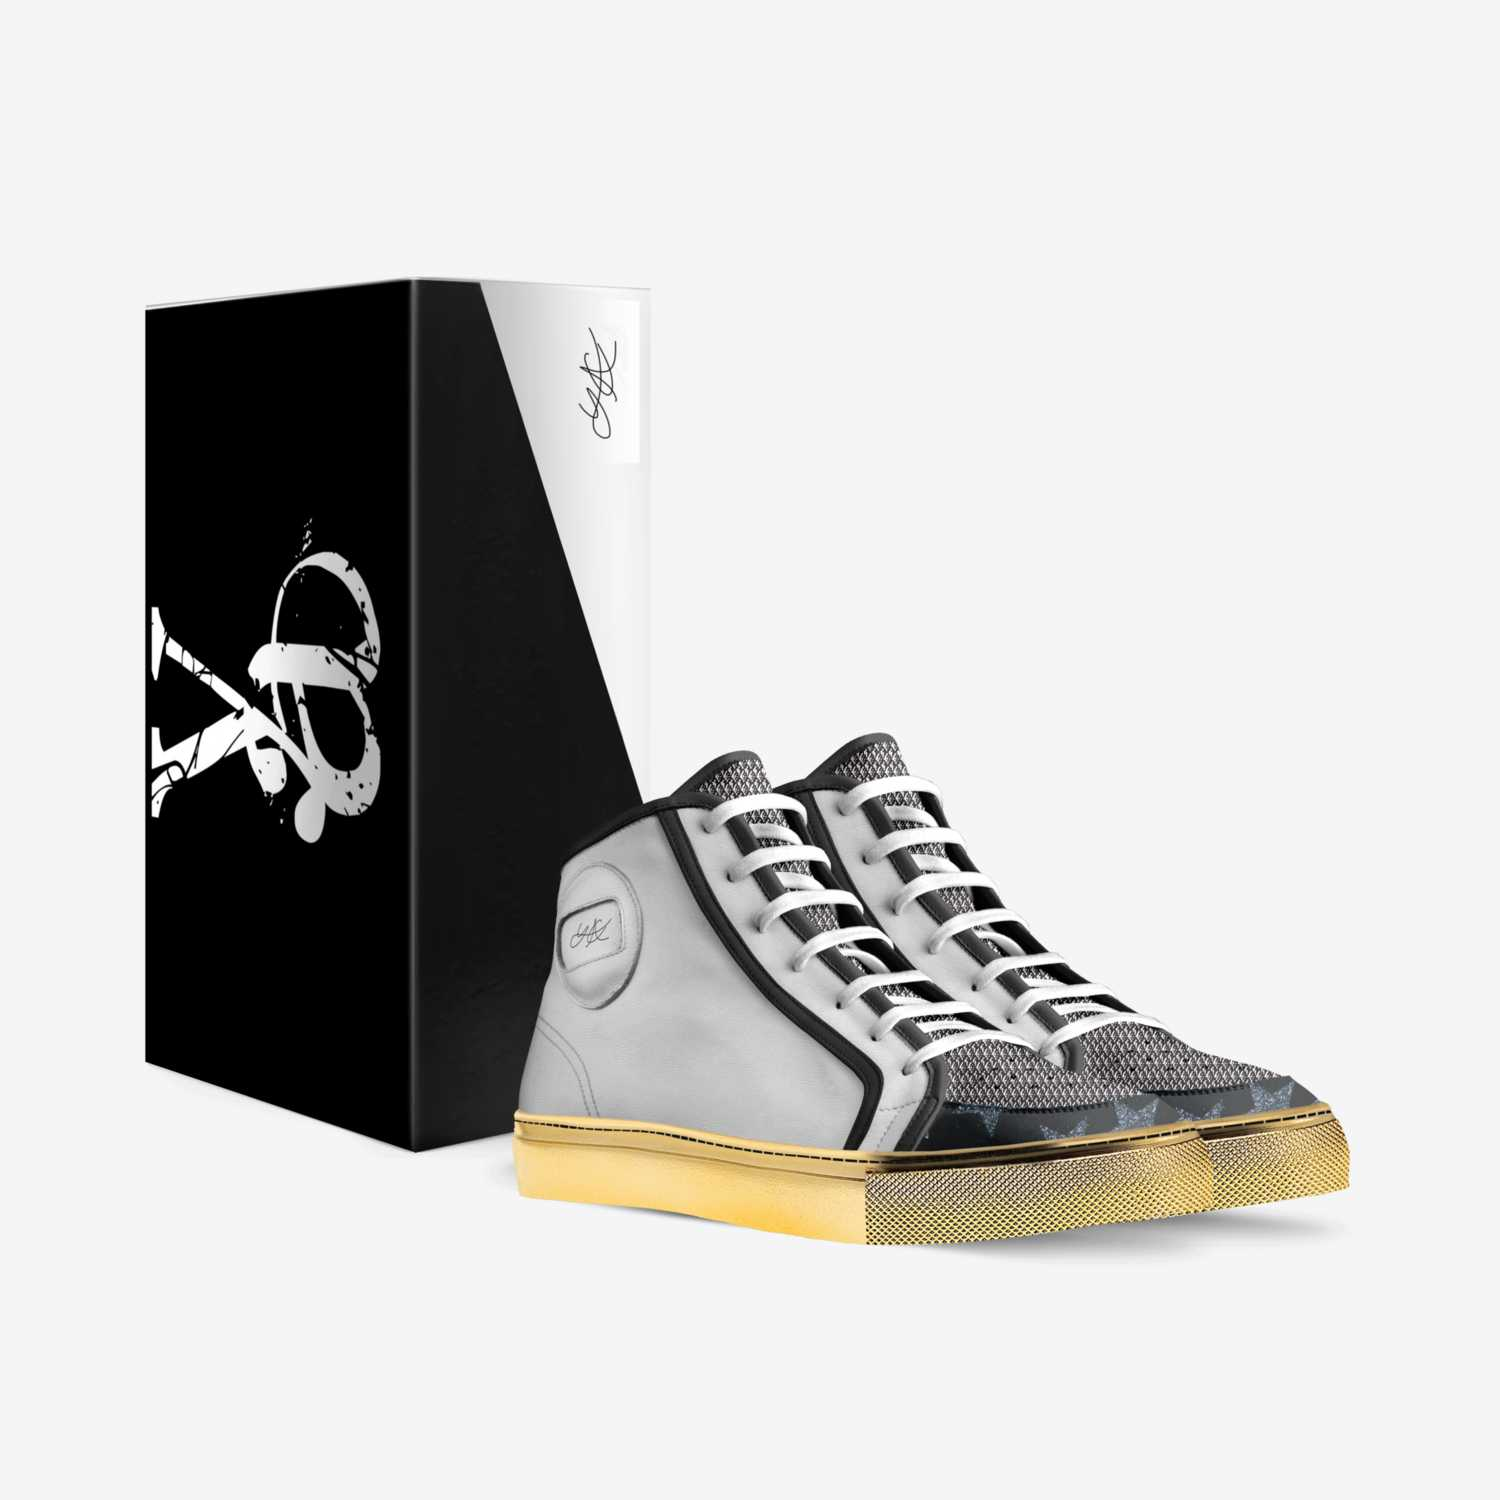 Yeshua Alexander custom made in Italy shoes by Yeshua Alexander | Box view